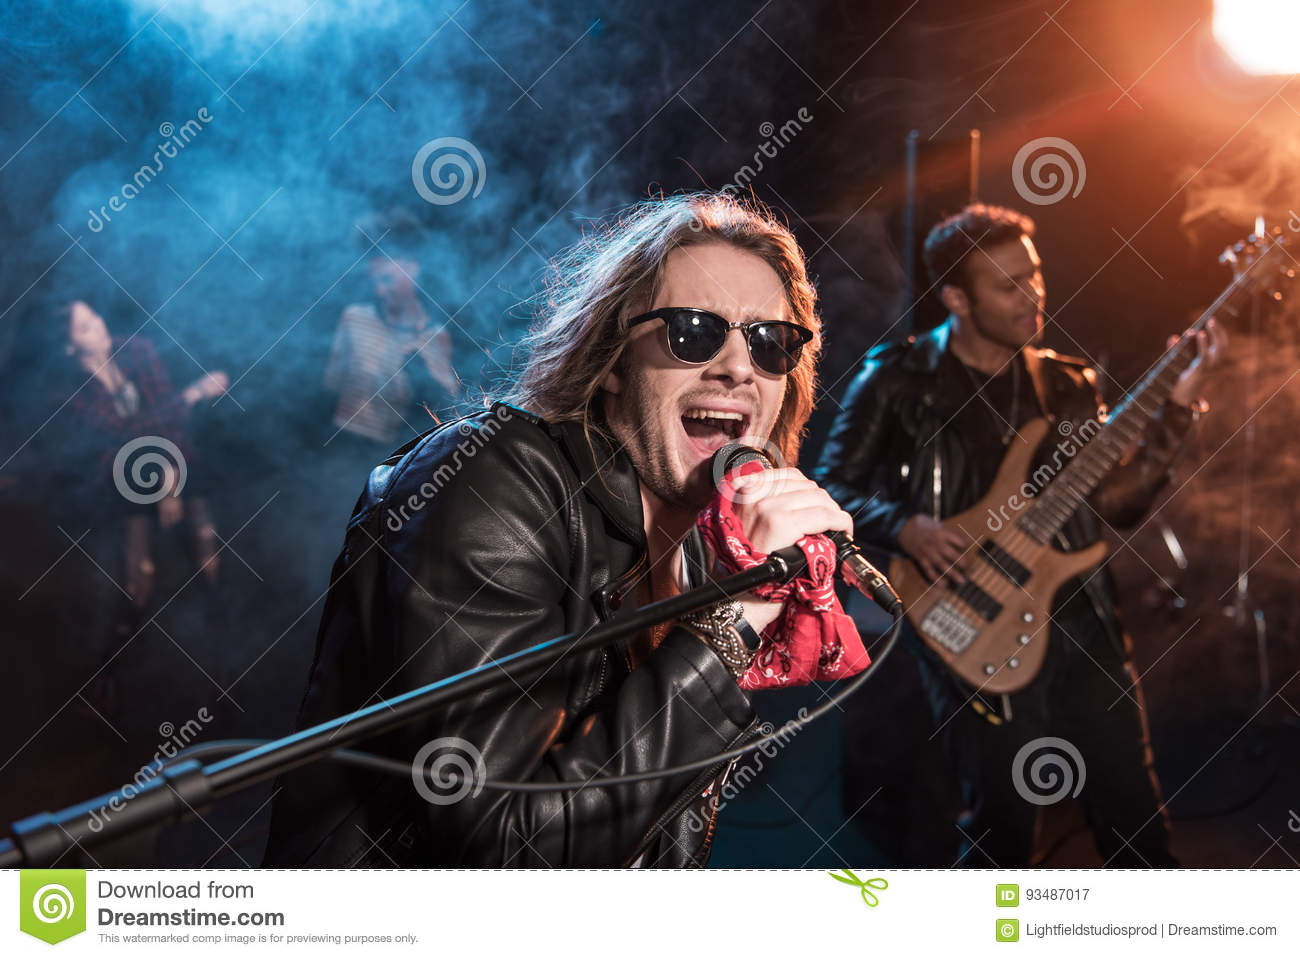 Male singer with microphone and rock and roll band performing hard rock music